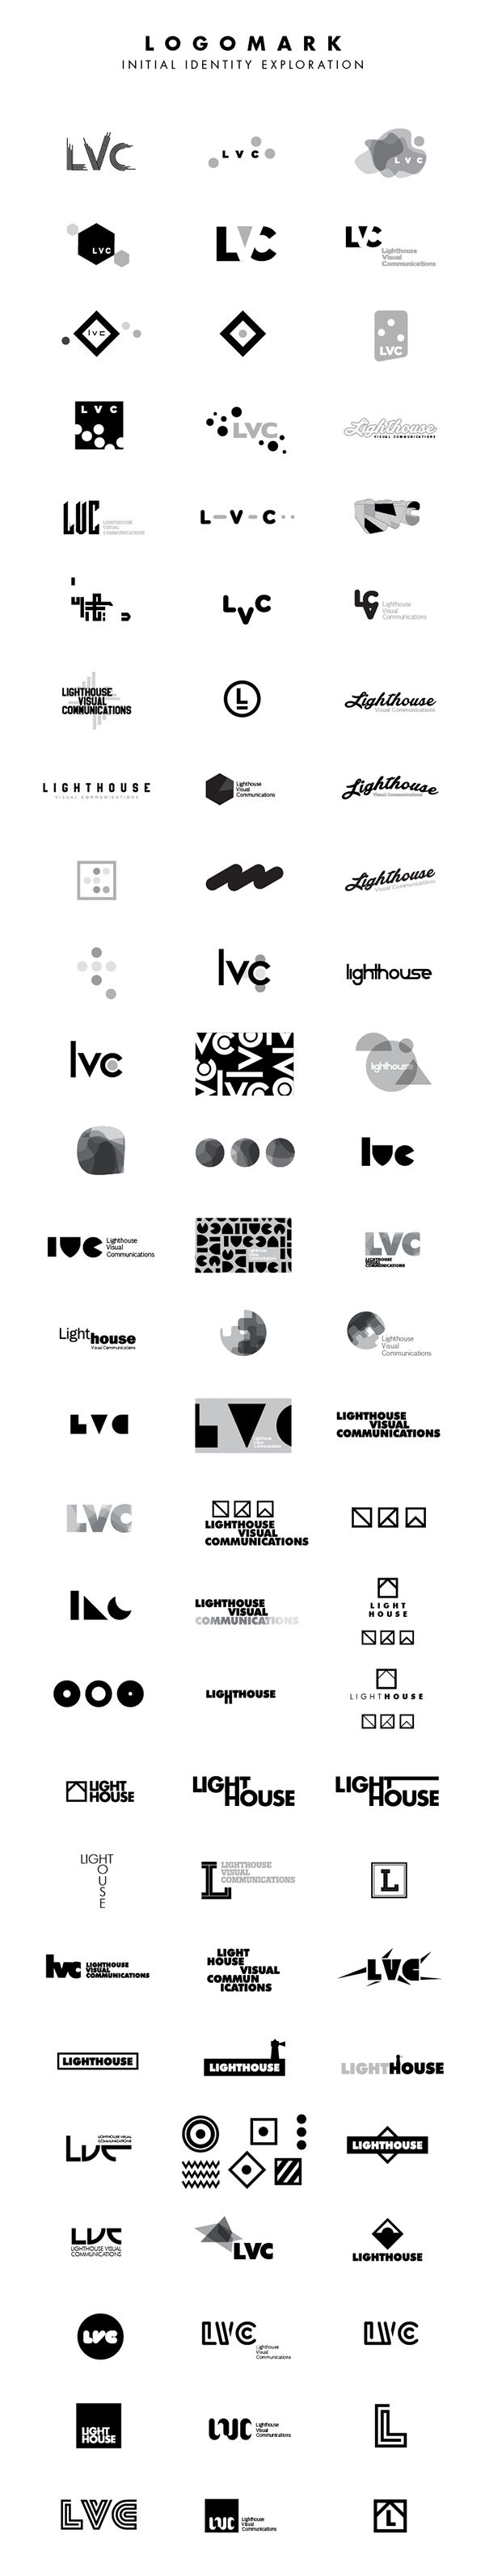 https://www.behance.net/gallery/23337873/LVC-Branding